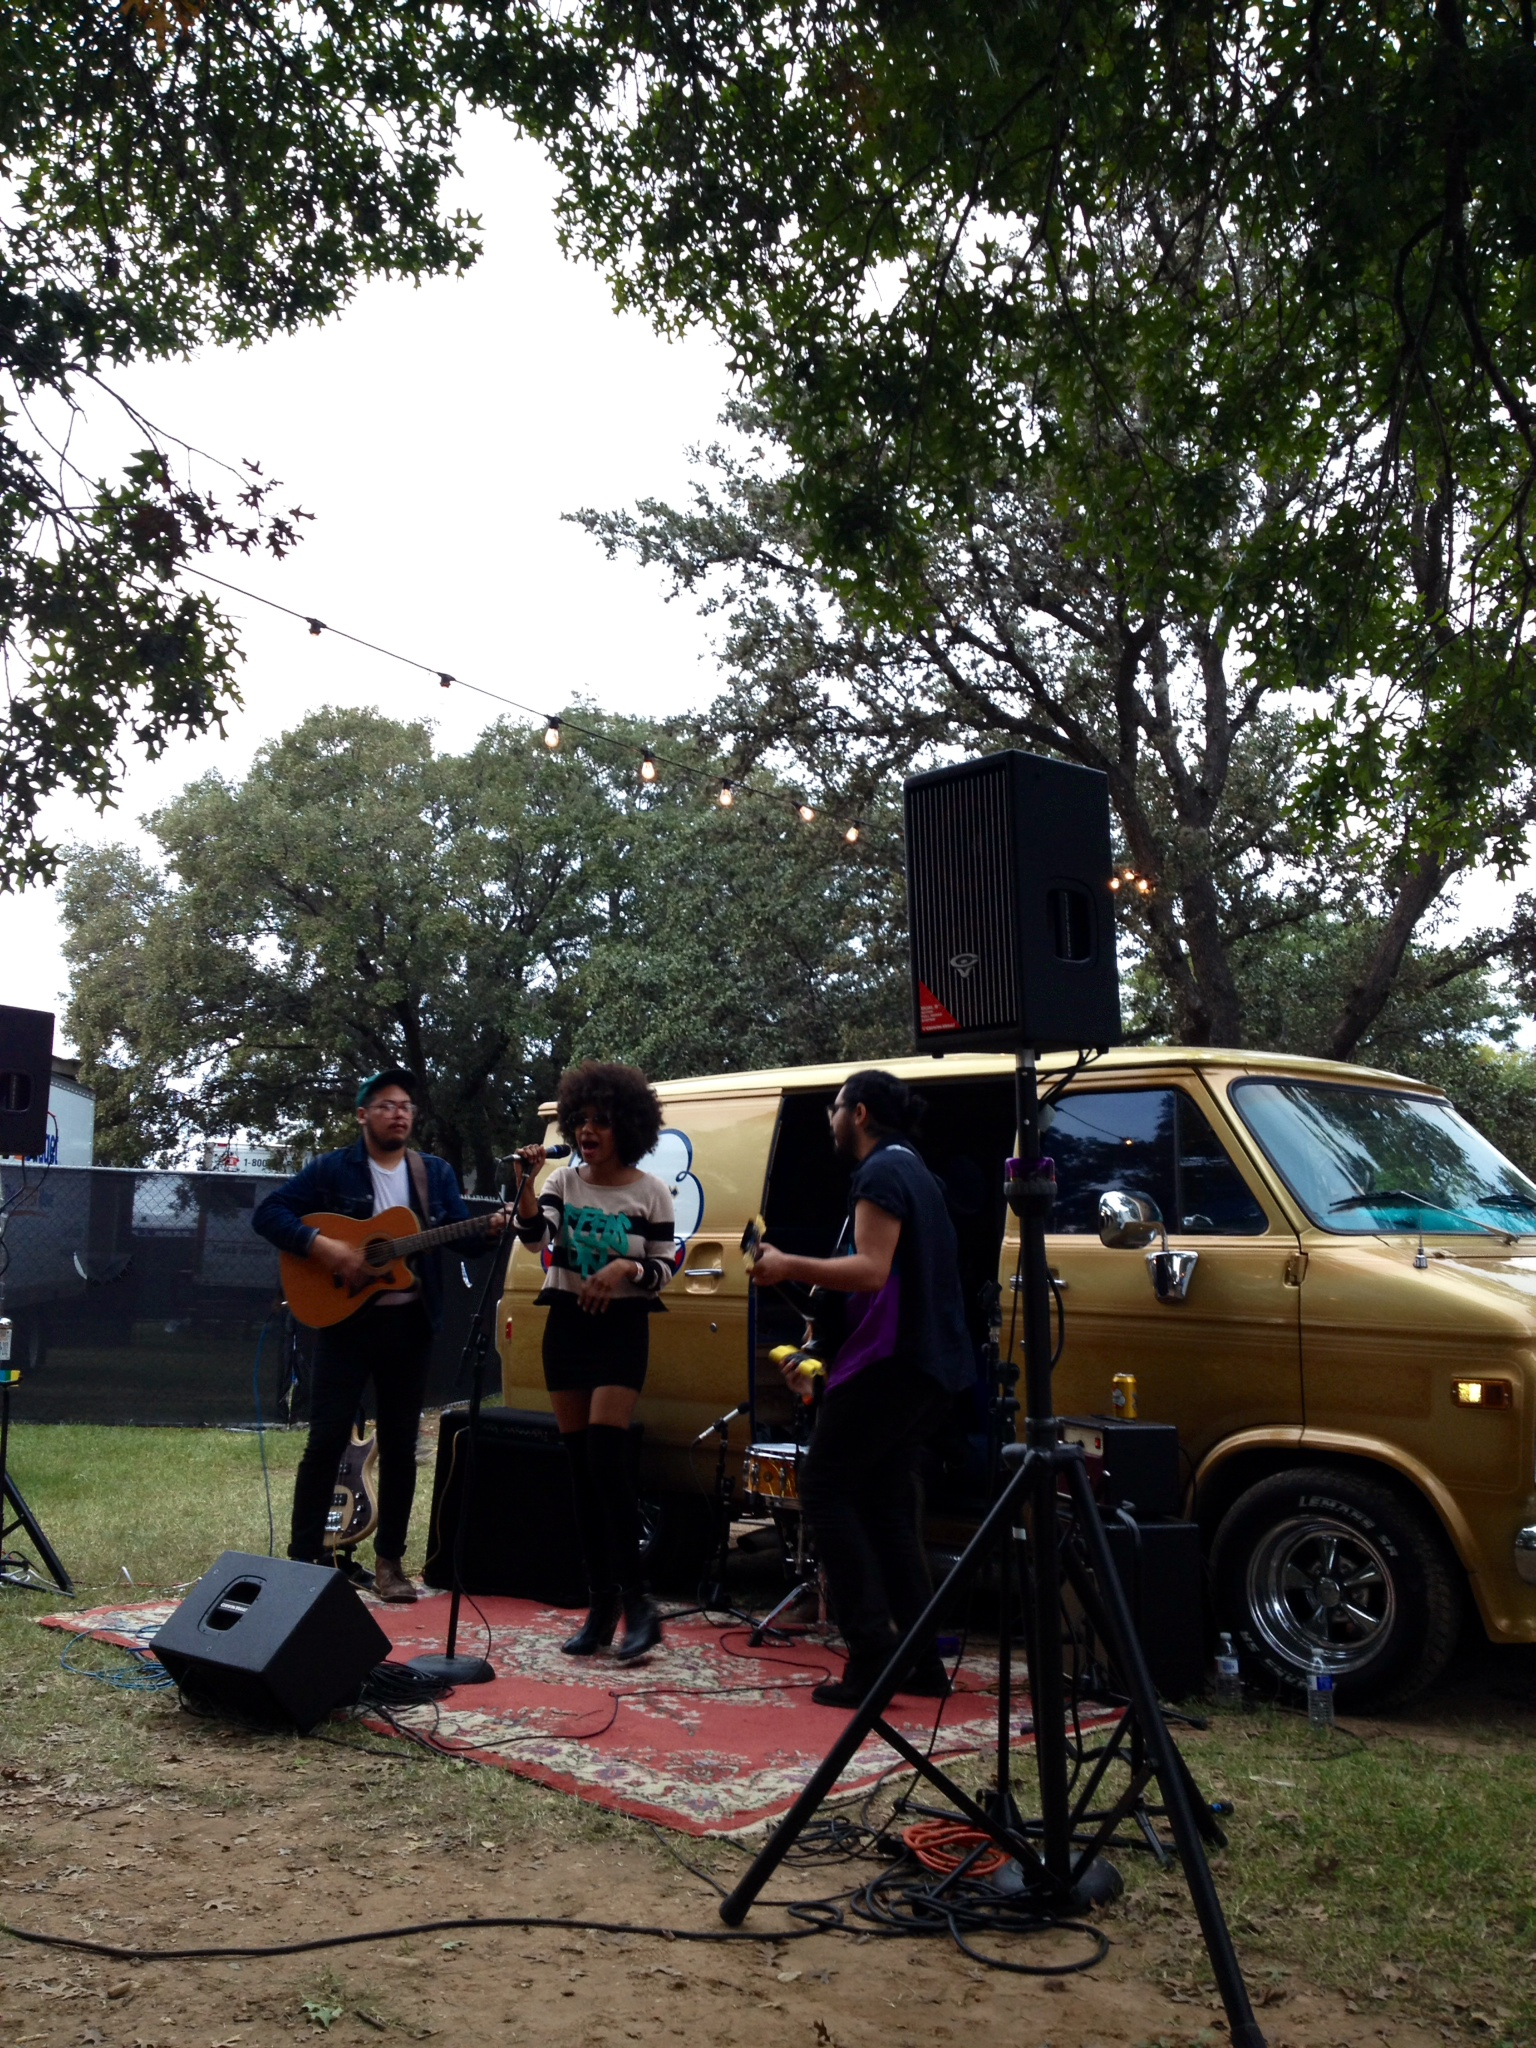 The TonTons play a set in front of the Shiner Gold bus for the FFF Fest attendees backstage in the Homies Lounge.